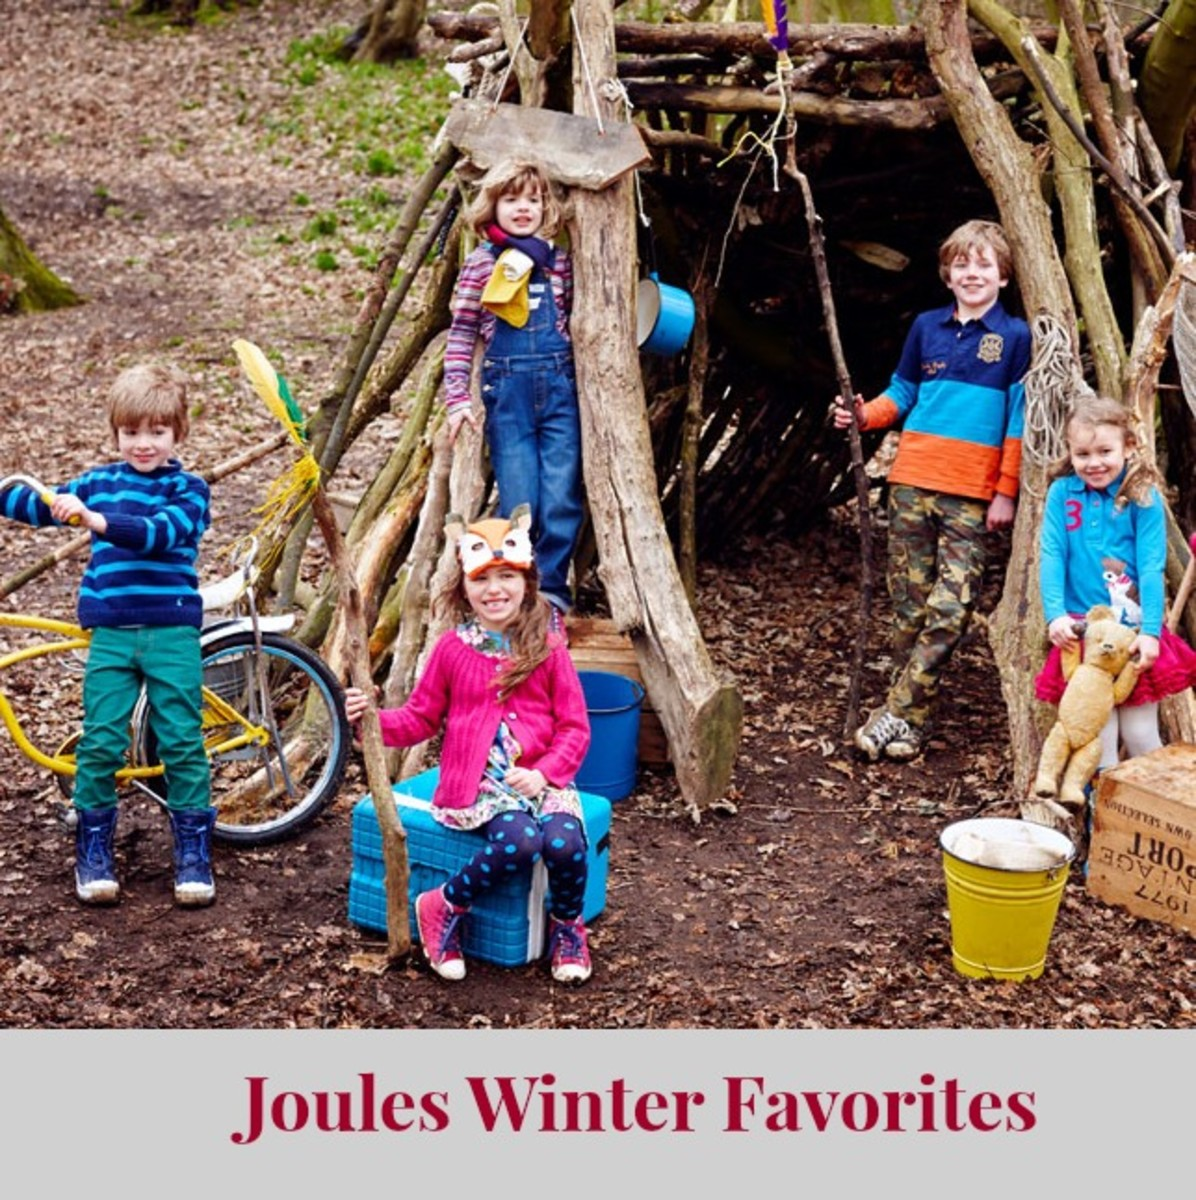 Joules Fashions